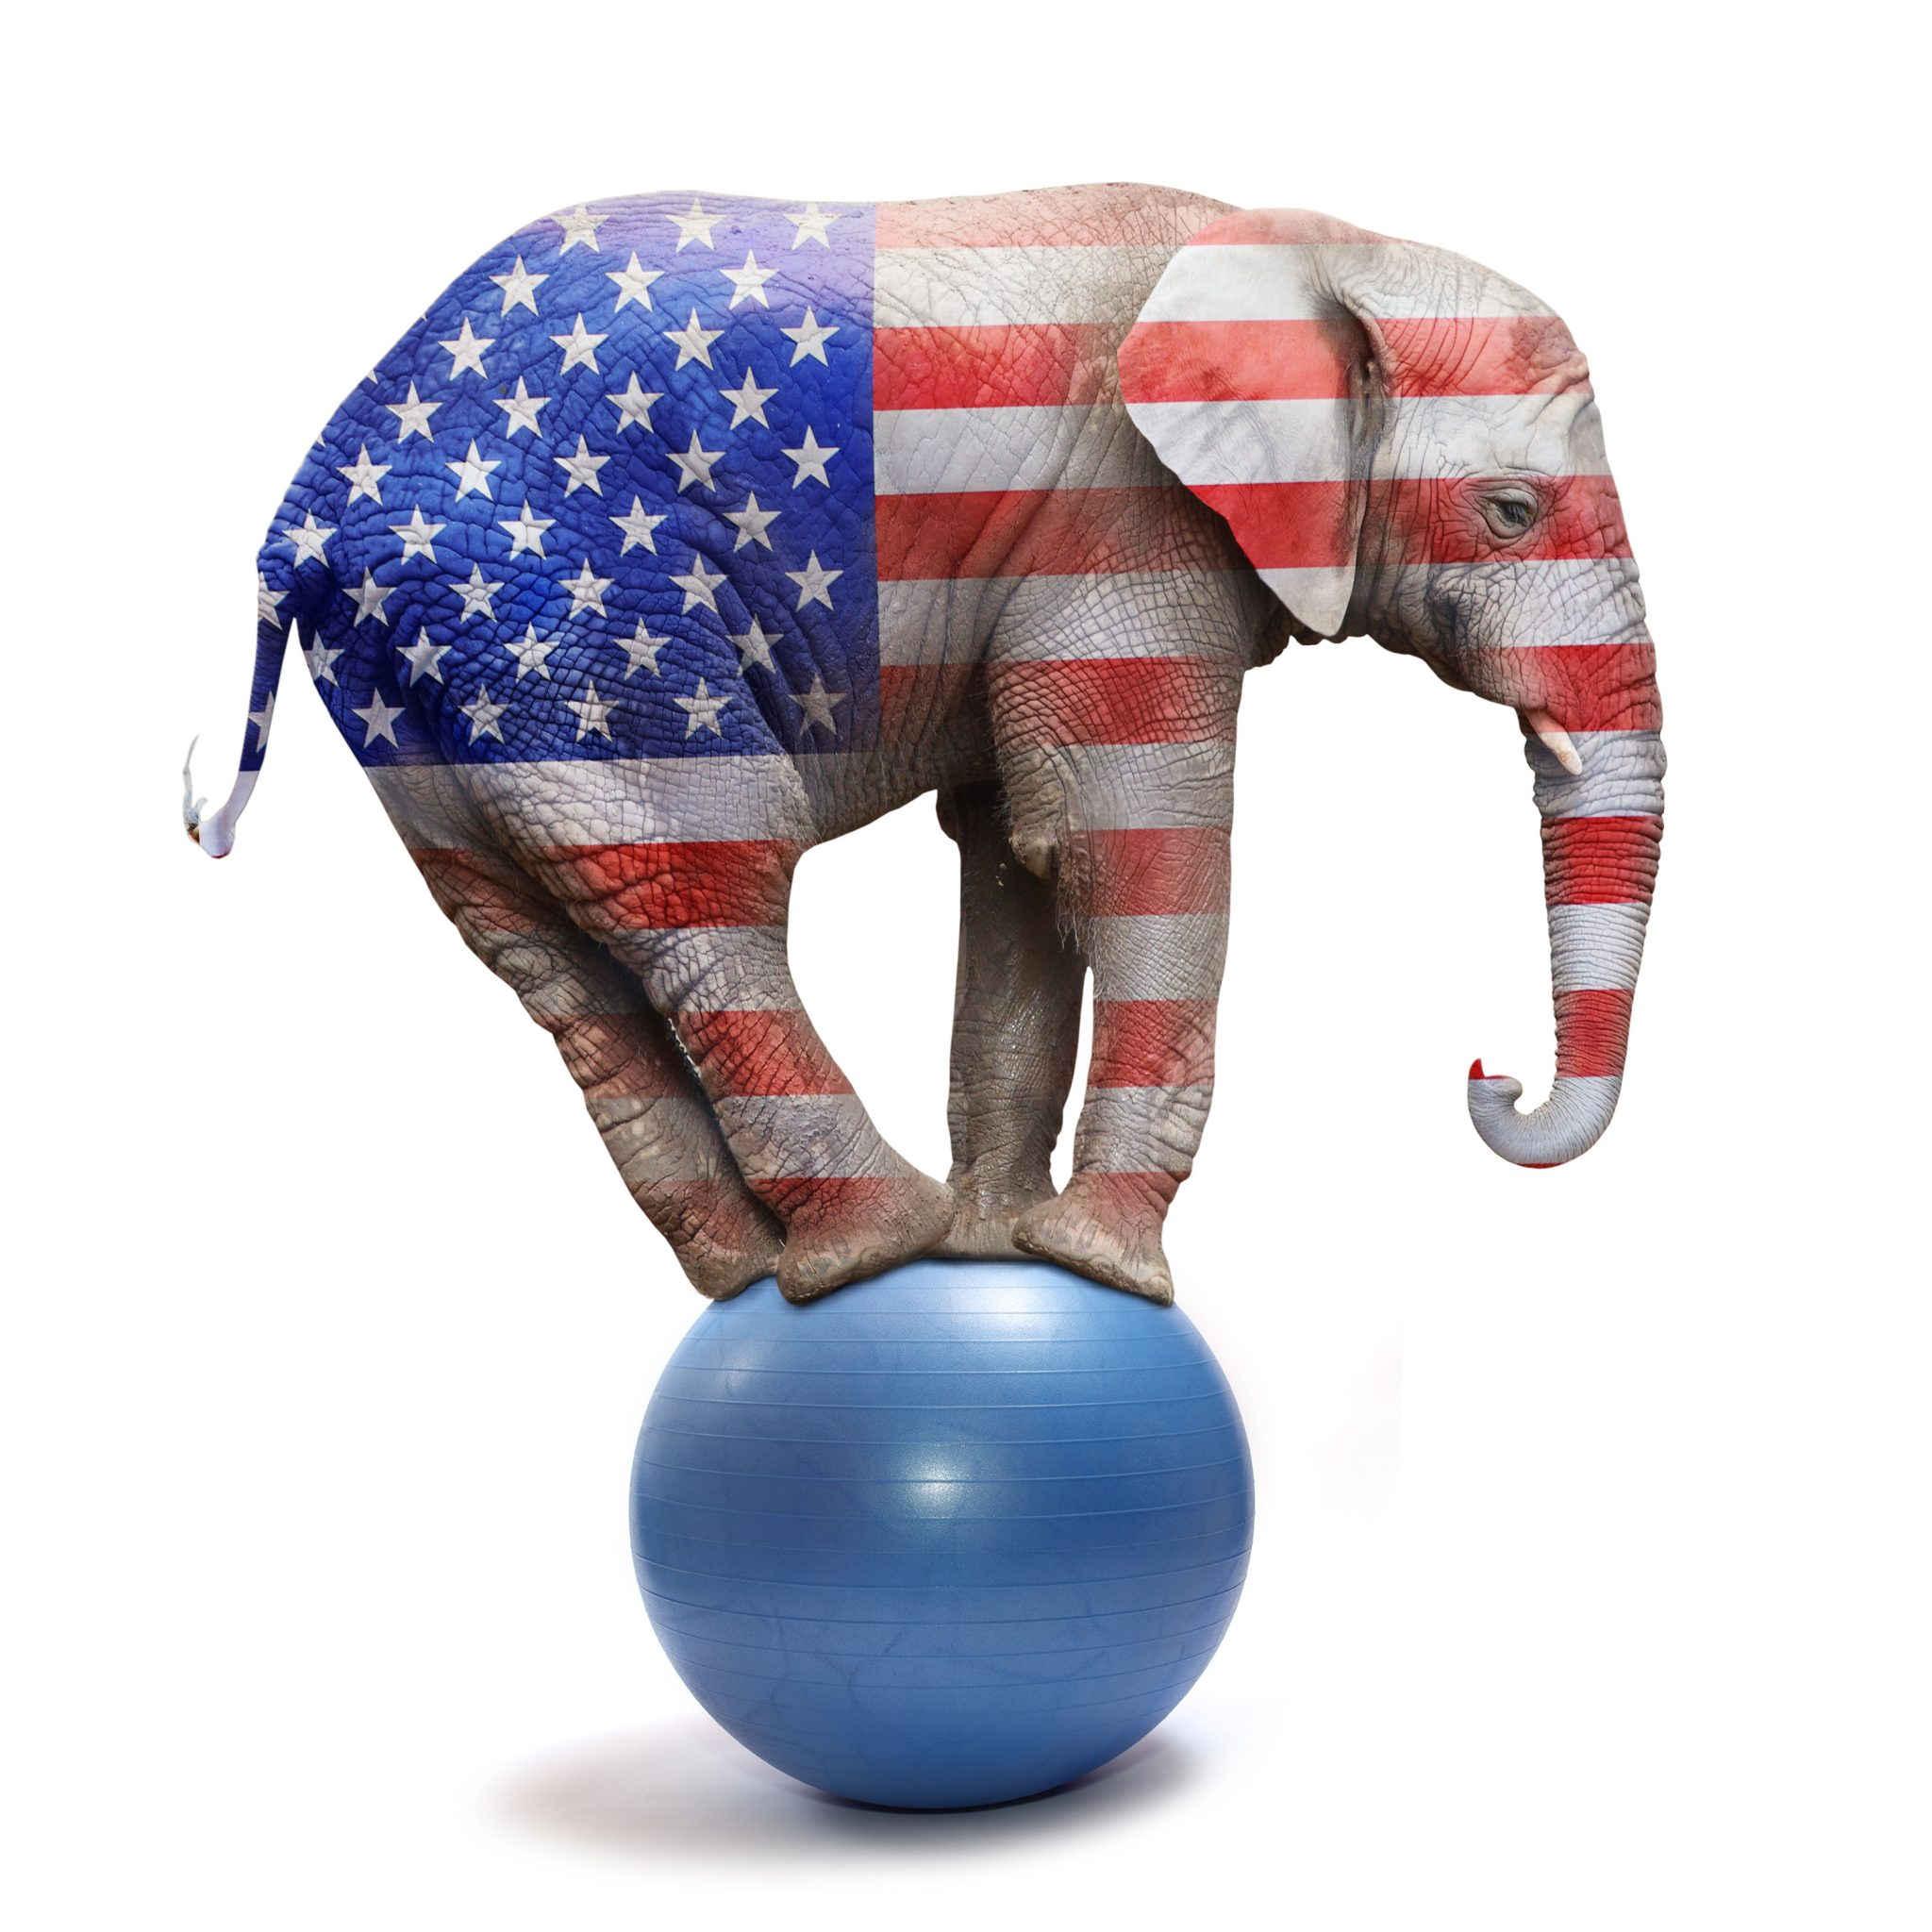 Republican elephant colored as a american flag balancing on blue ball. Big elephant going to elections. Digital artwork on political theme.